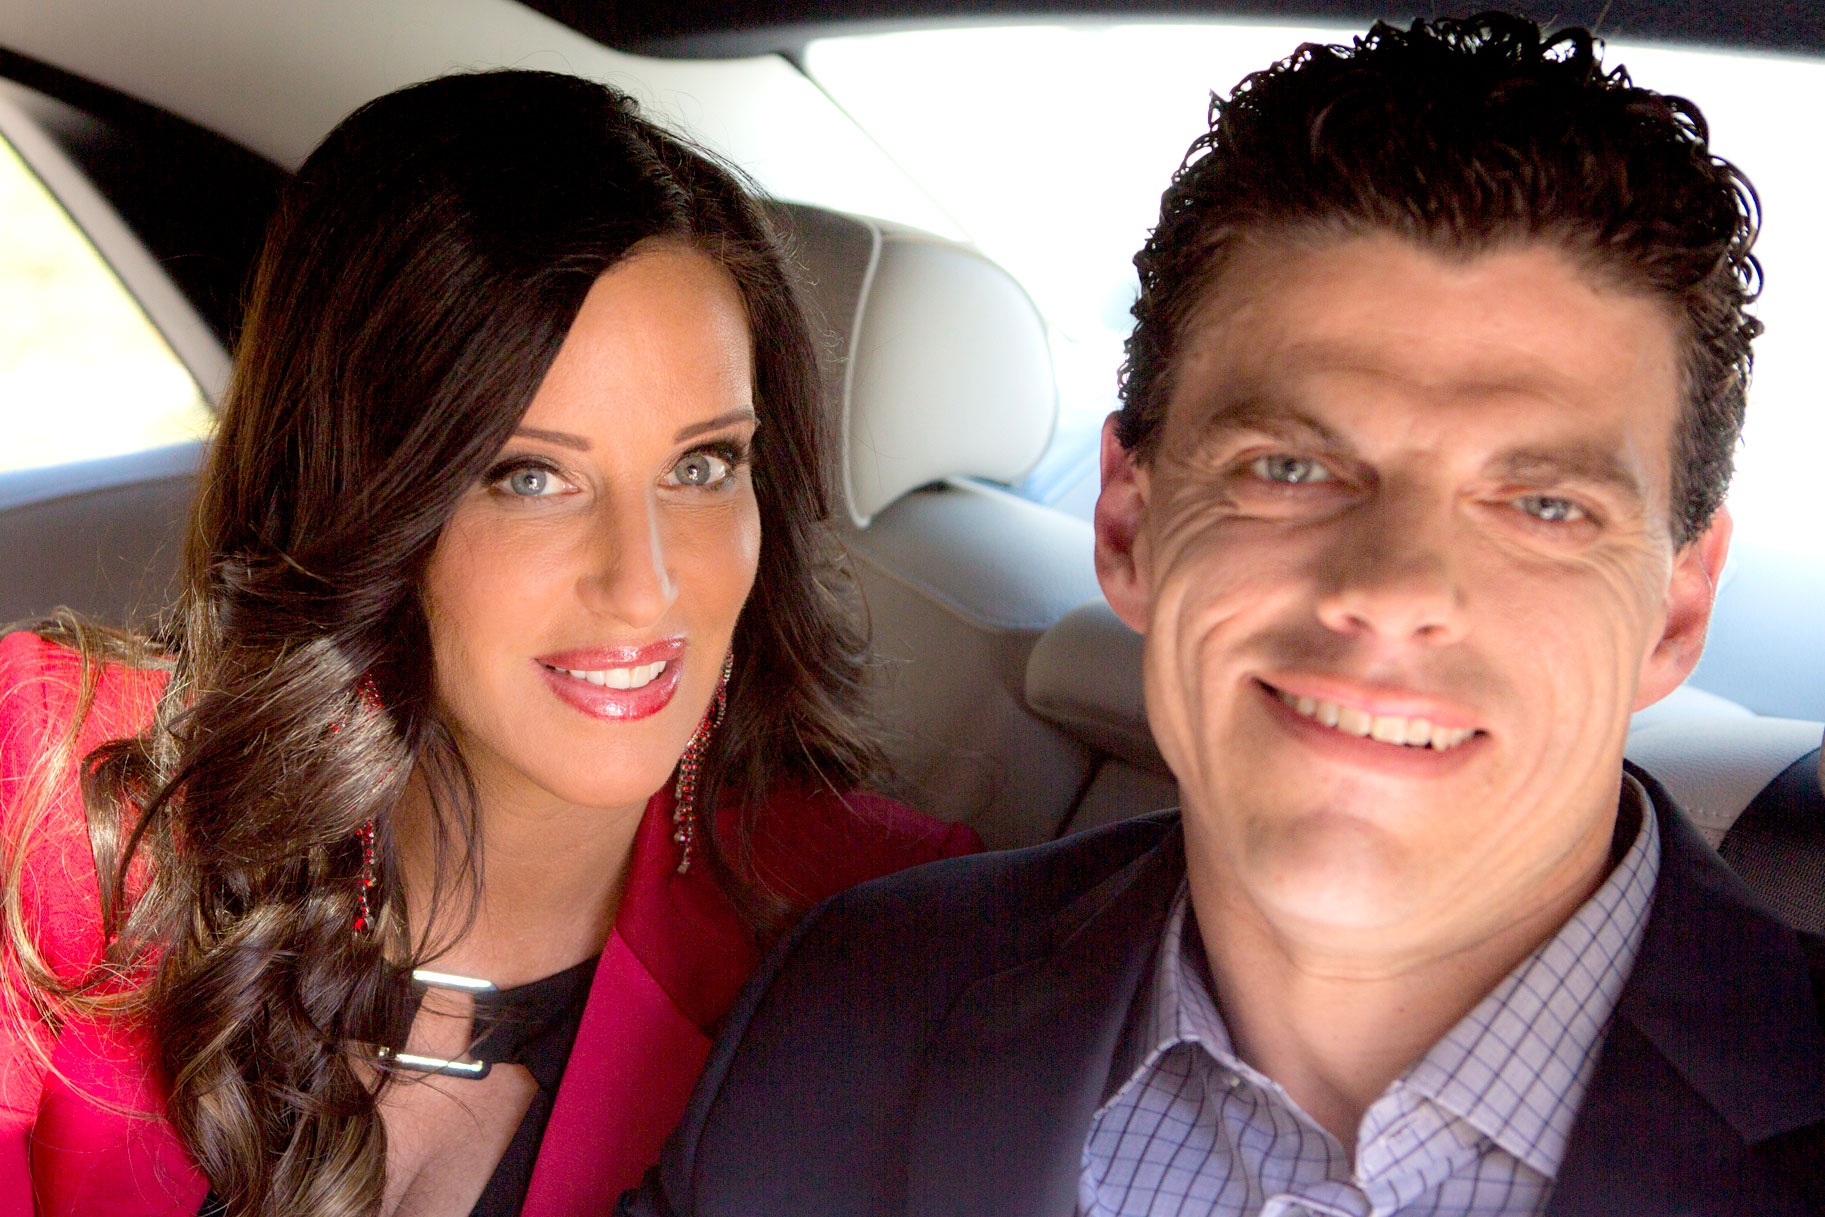 Patti stanger matchmaker married millionaire Are Any